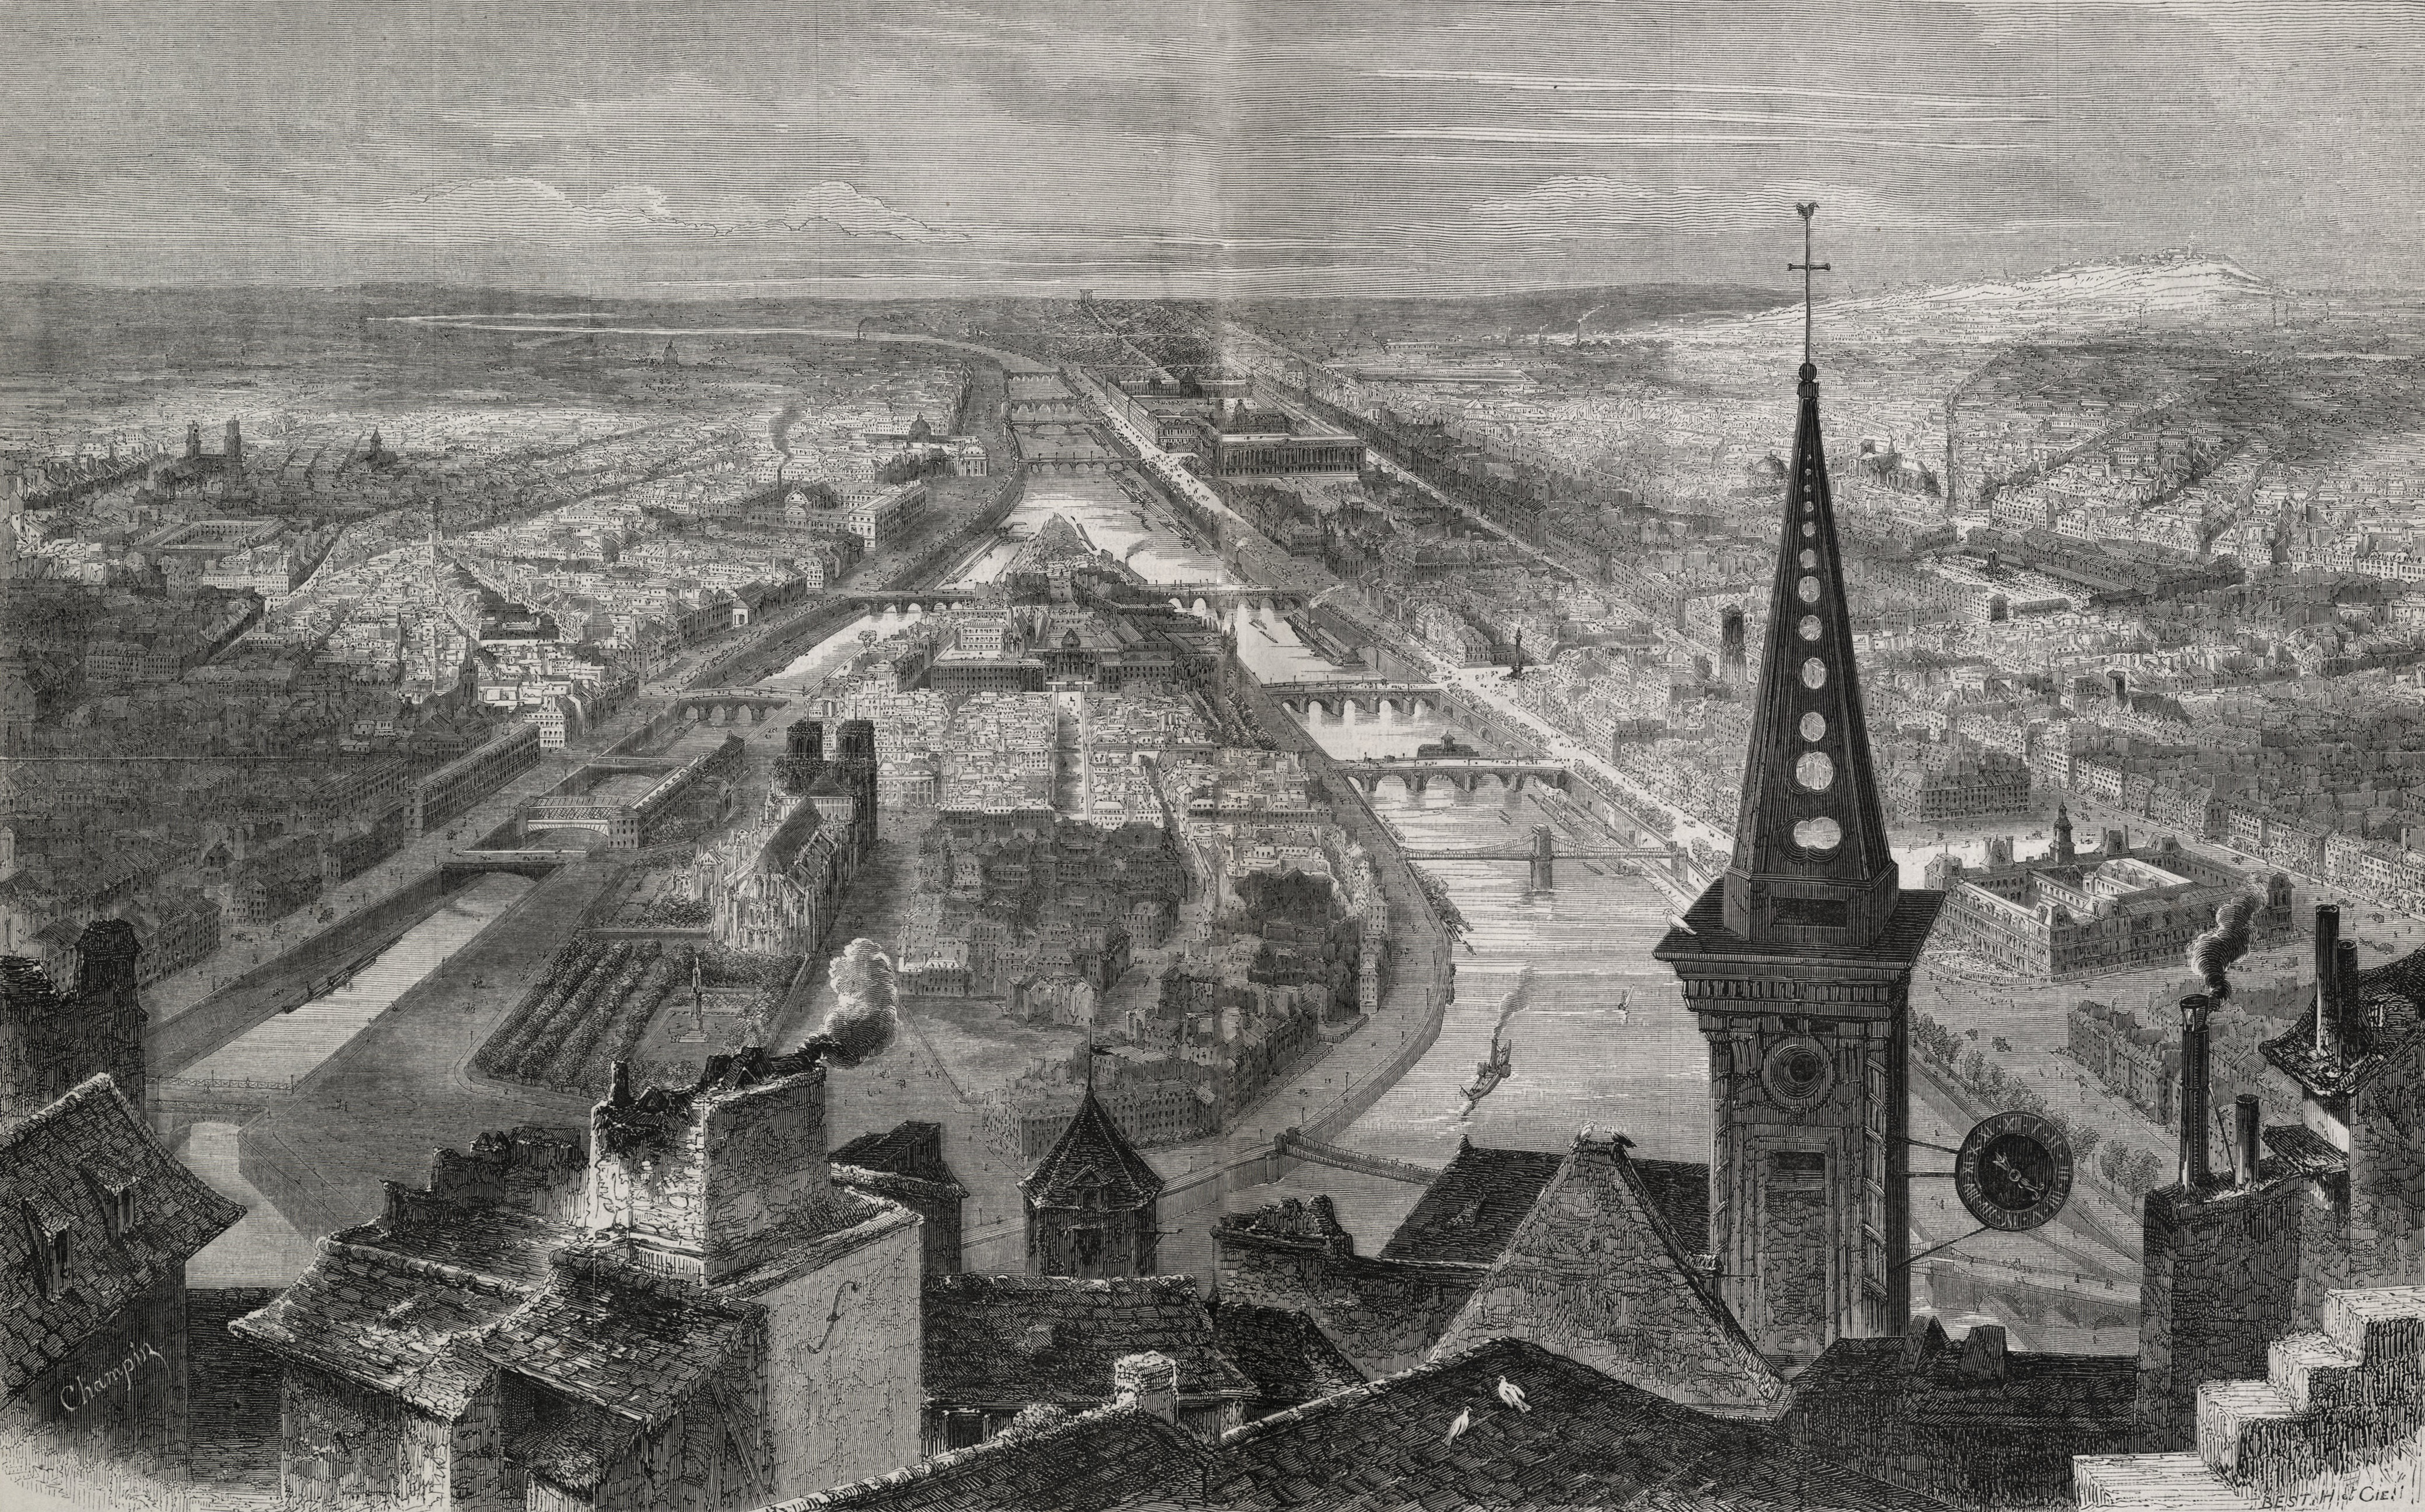 File:Paris à vol d'oiseau, Illustration, 1852.jpg